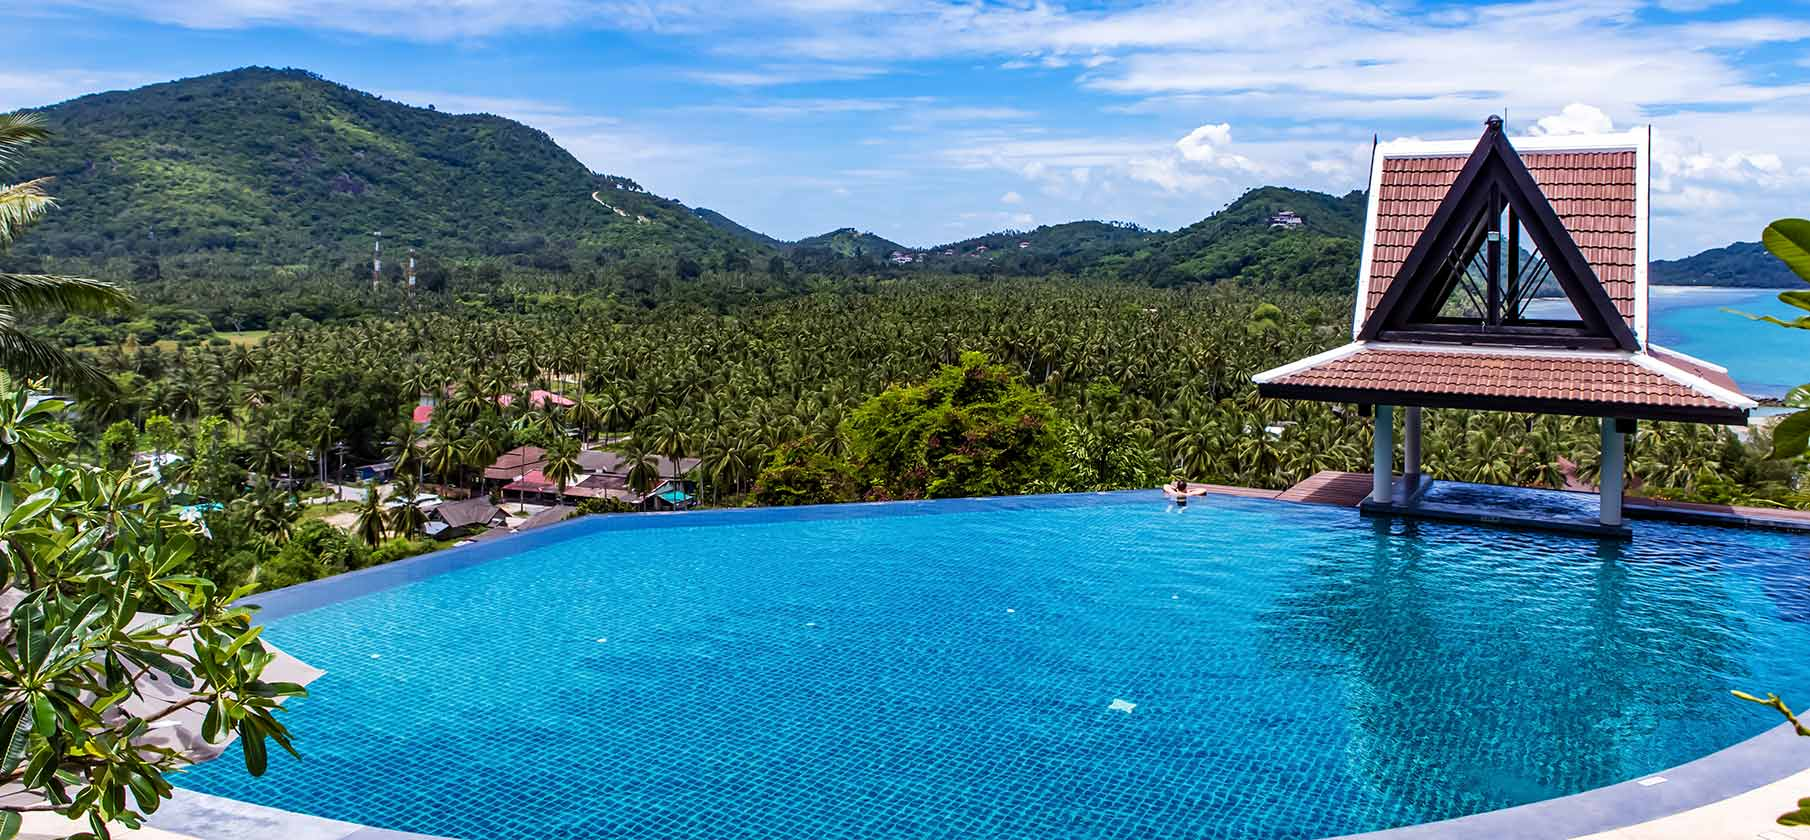 Our Resort Comes Complete With Seven Incredible Pools Nestled In Paradise.  With Some Of The Best Views In Samui.